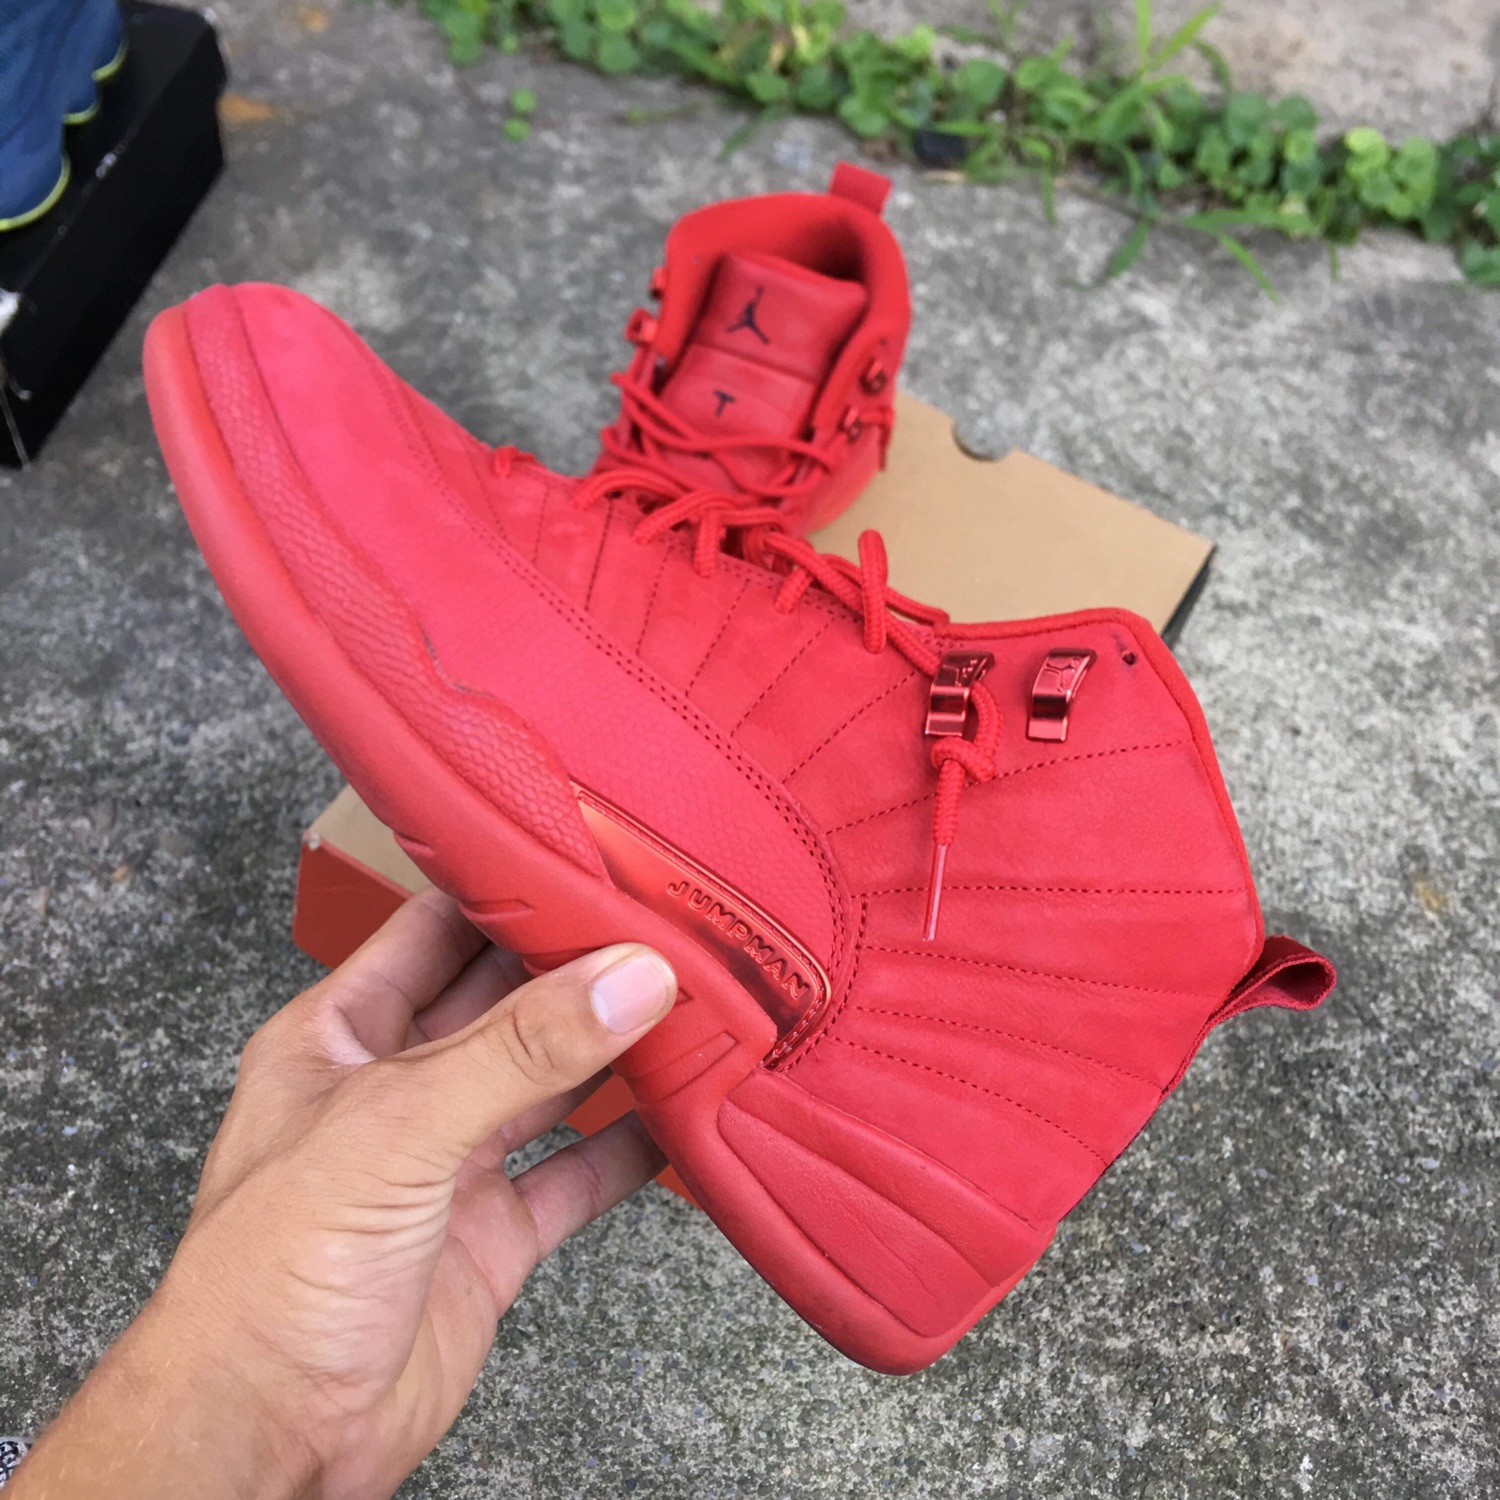 new styles 6a235 945ca Gym Red Jordan 12 Size 10 Og All